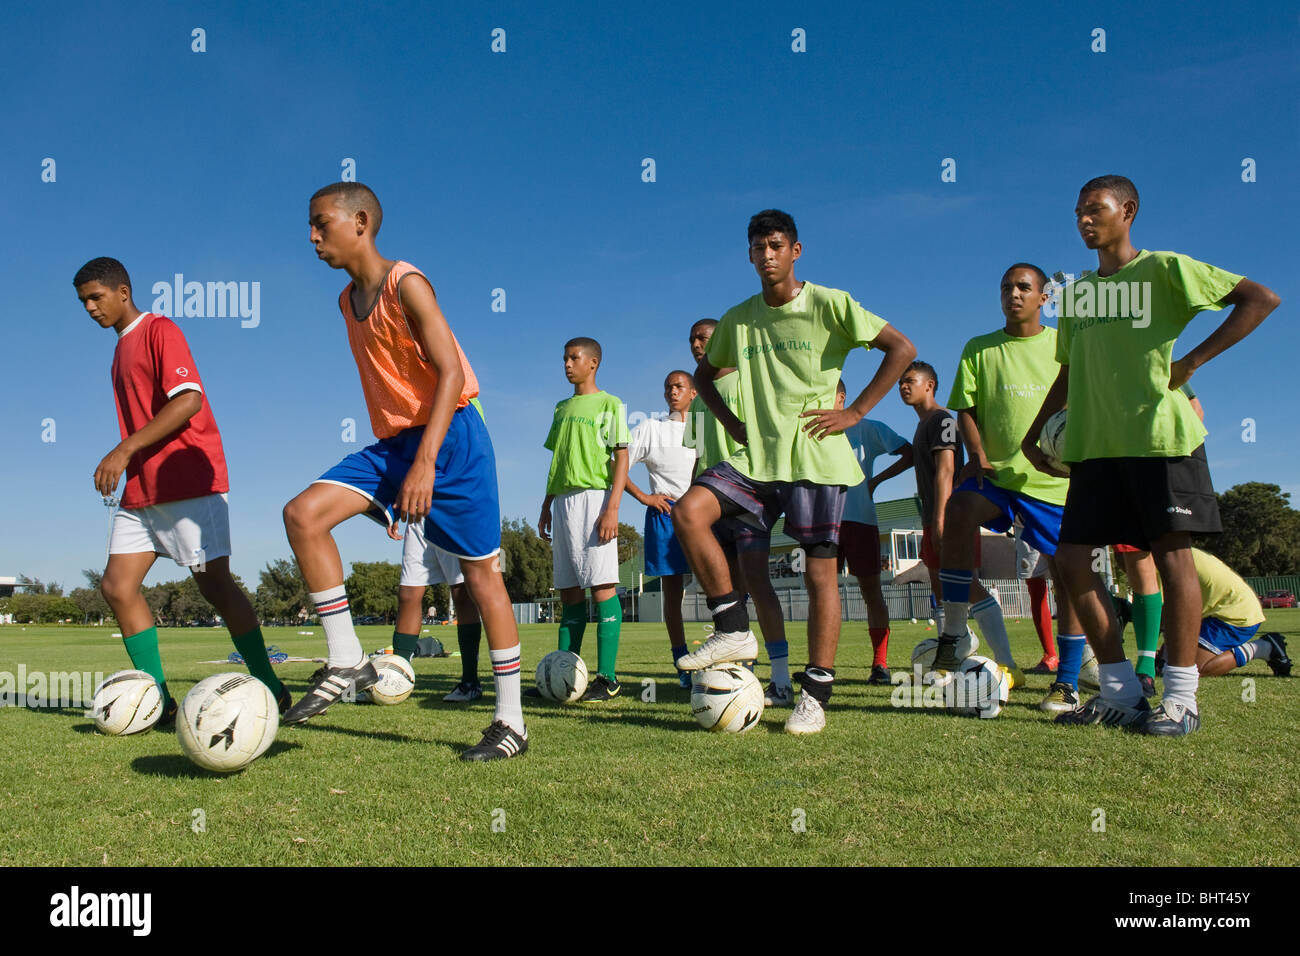 Players training at Old Mutual Football Academy, Cape Town, South Africa - Stock Image